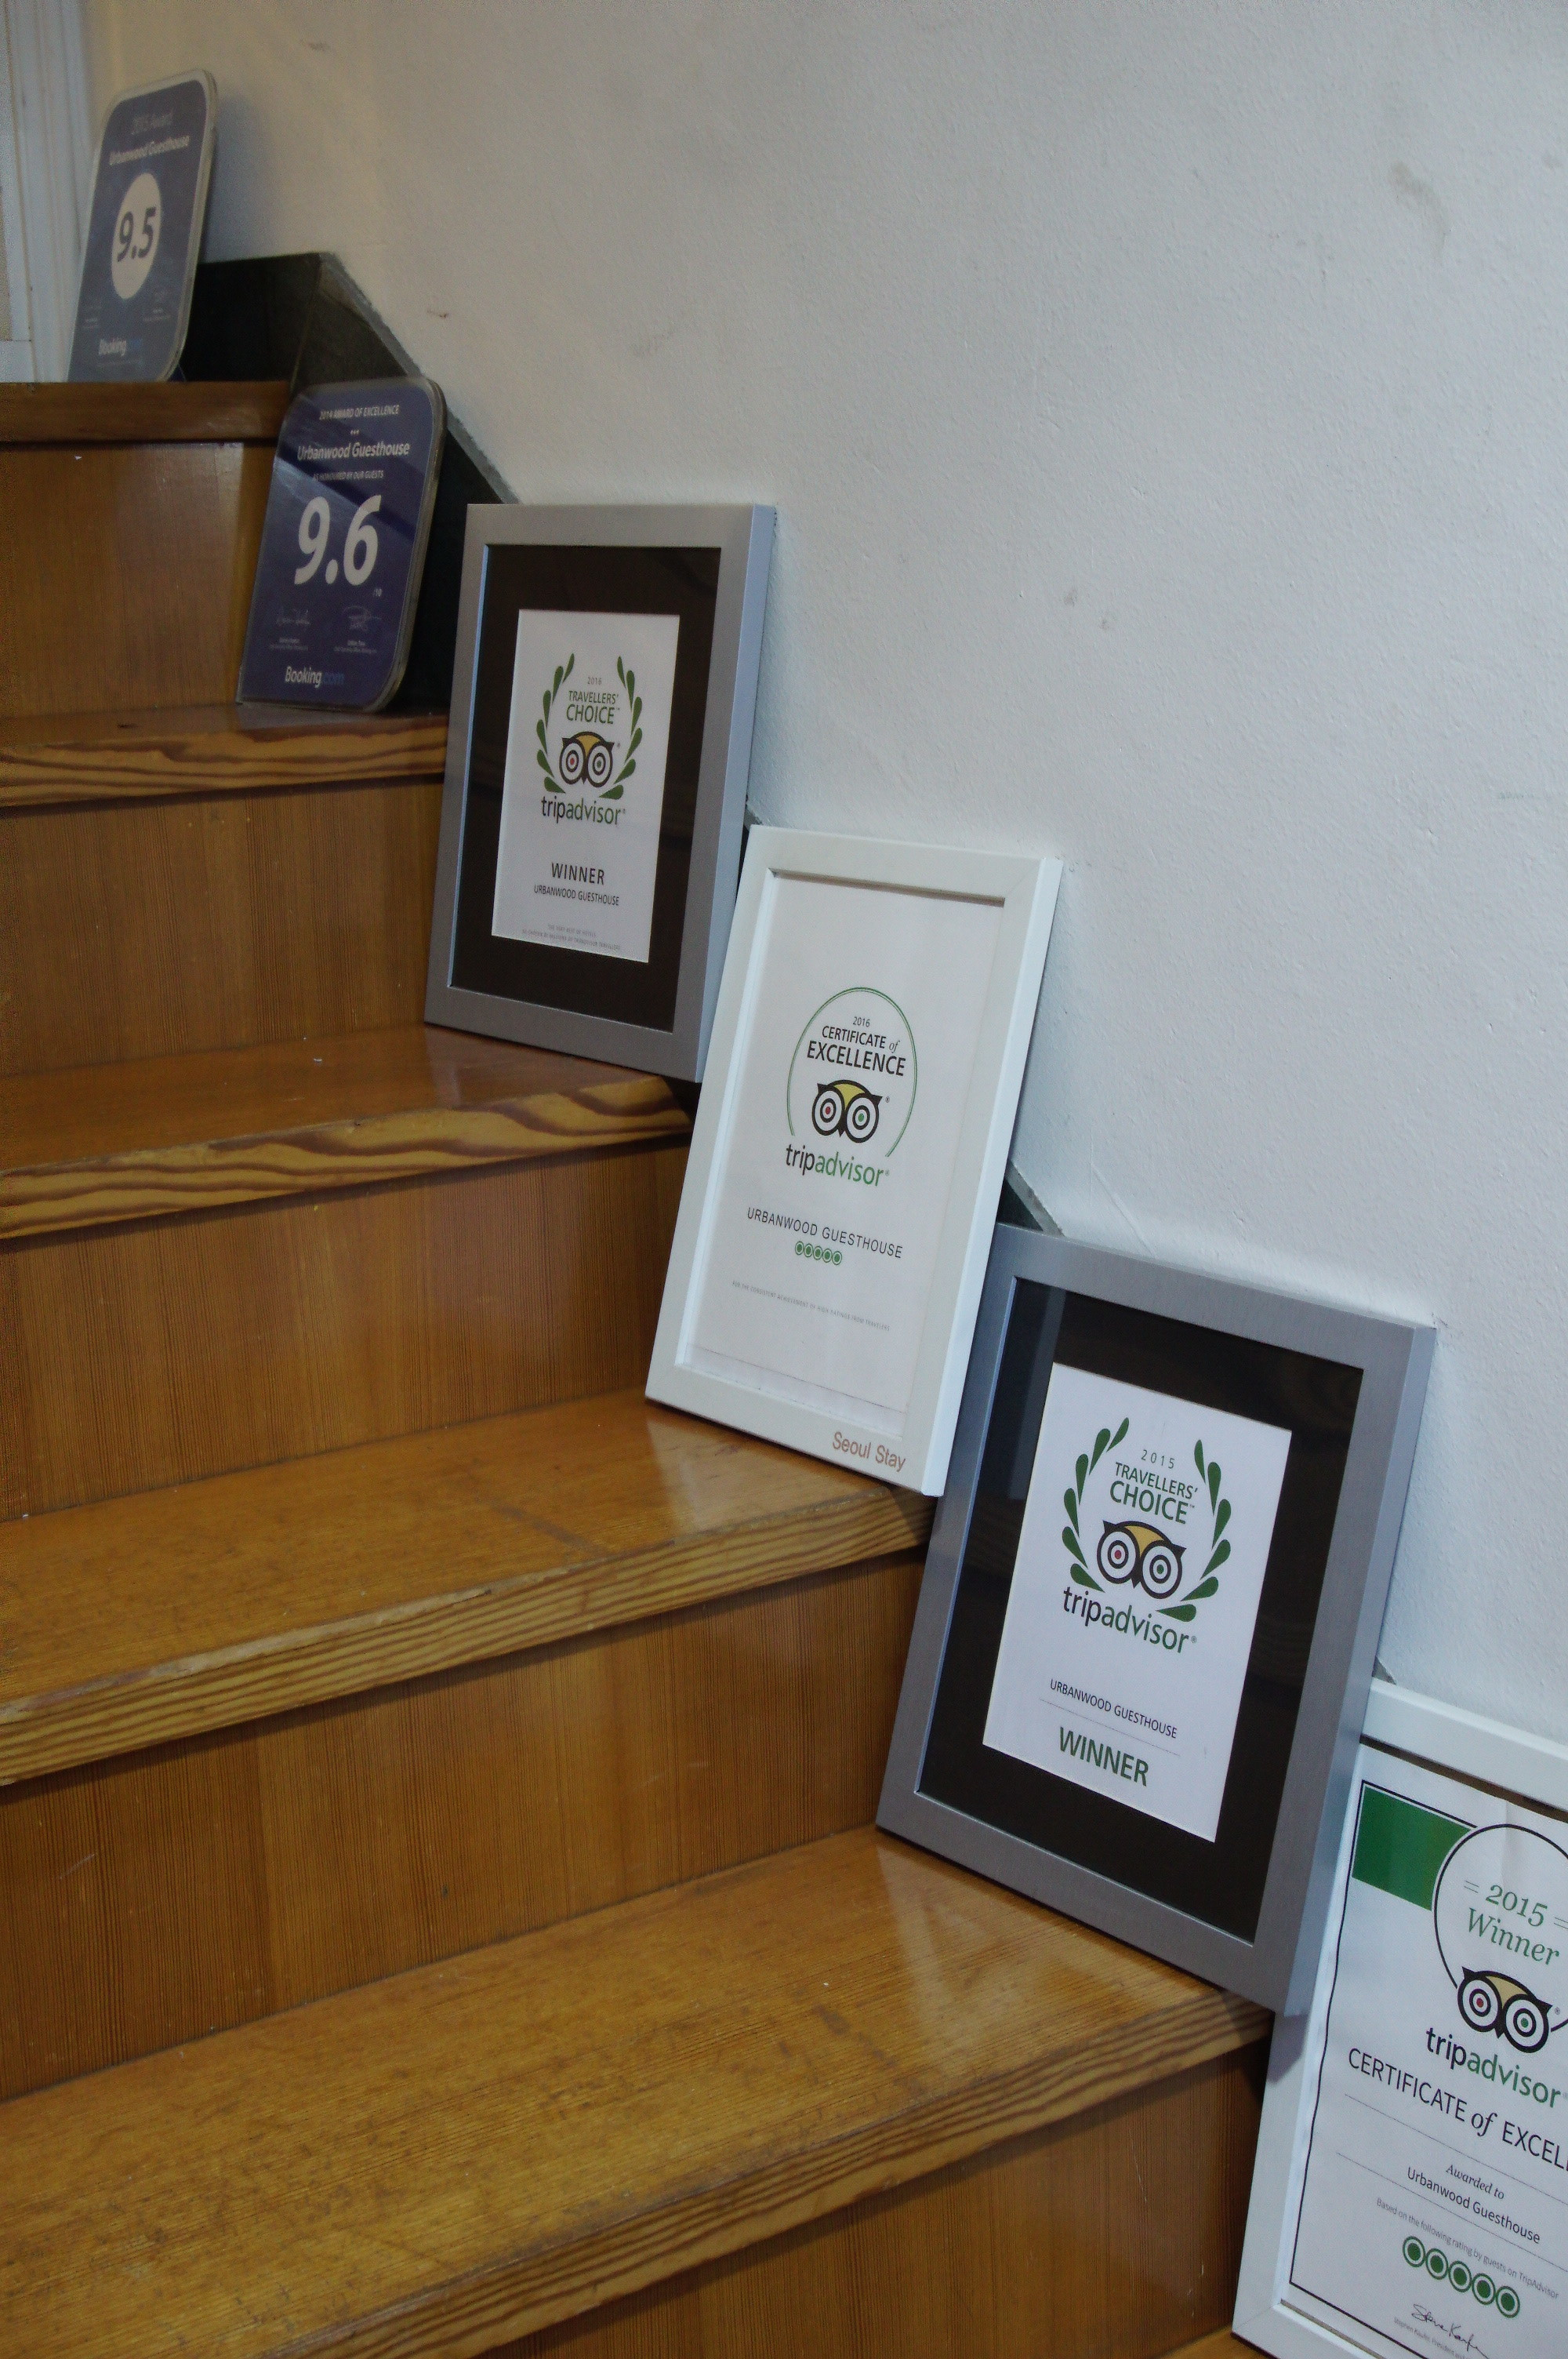 Just a few awards that they received...!